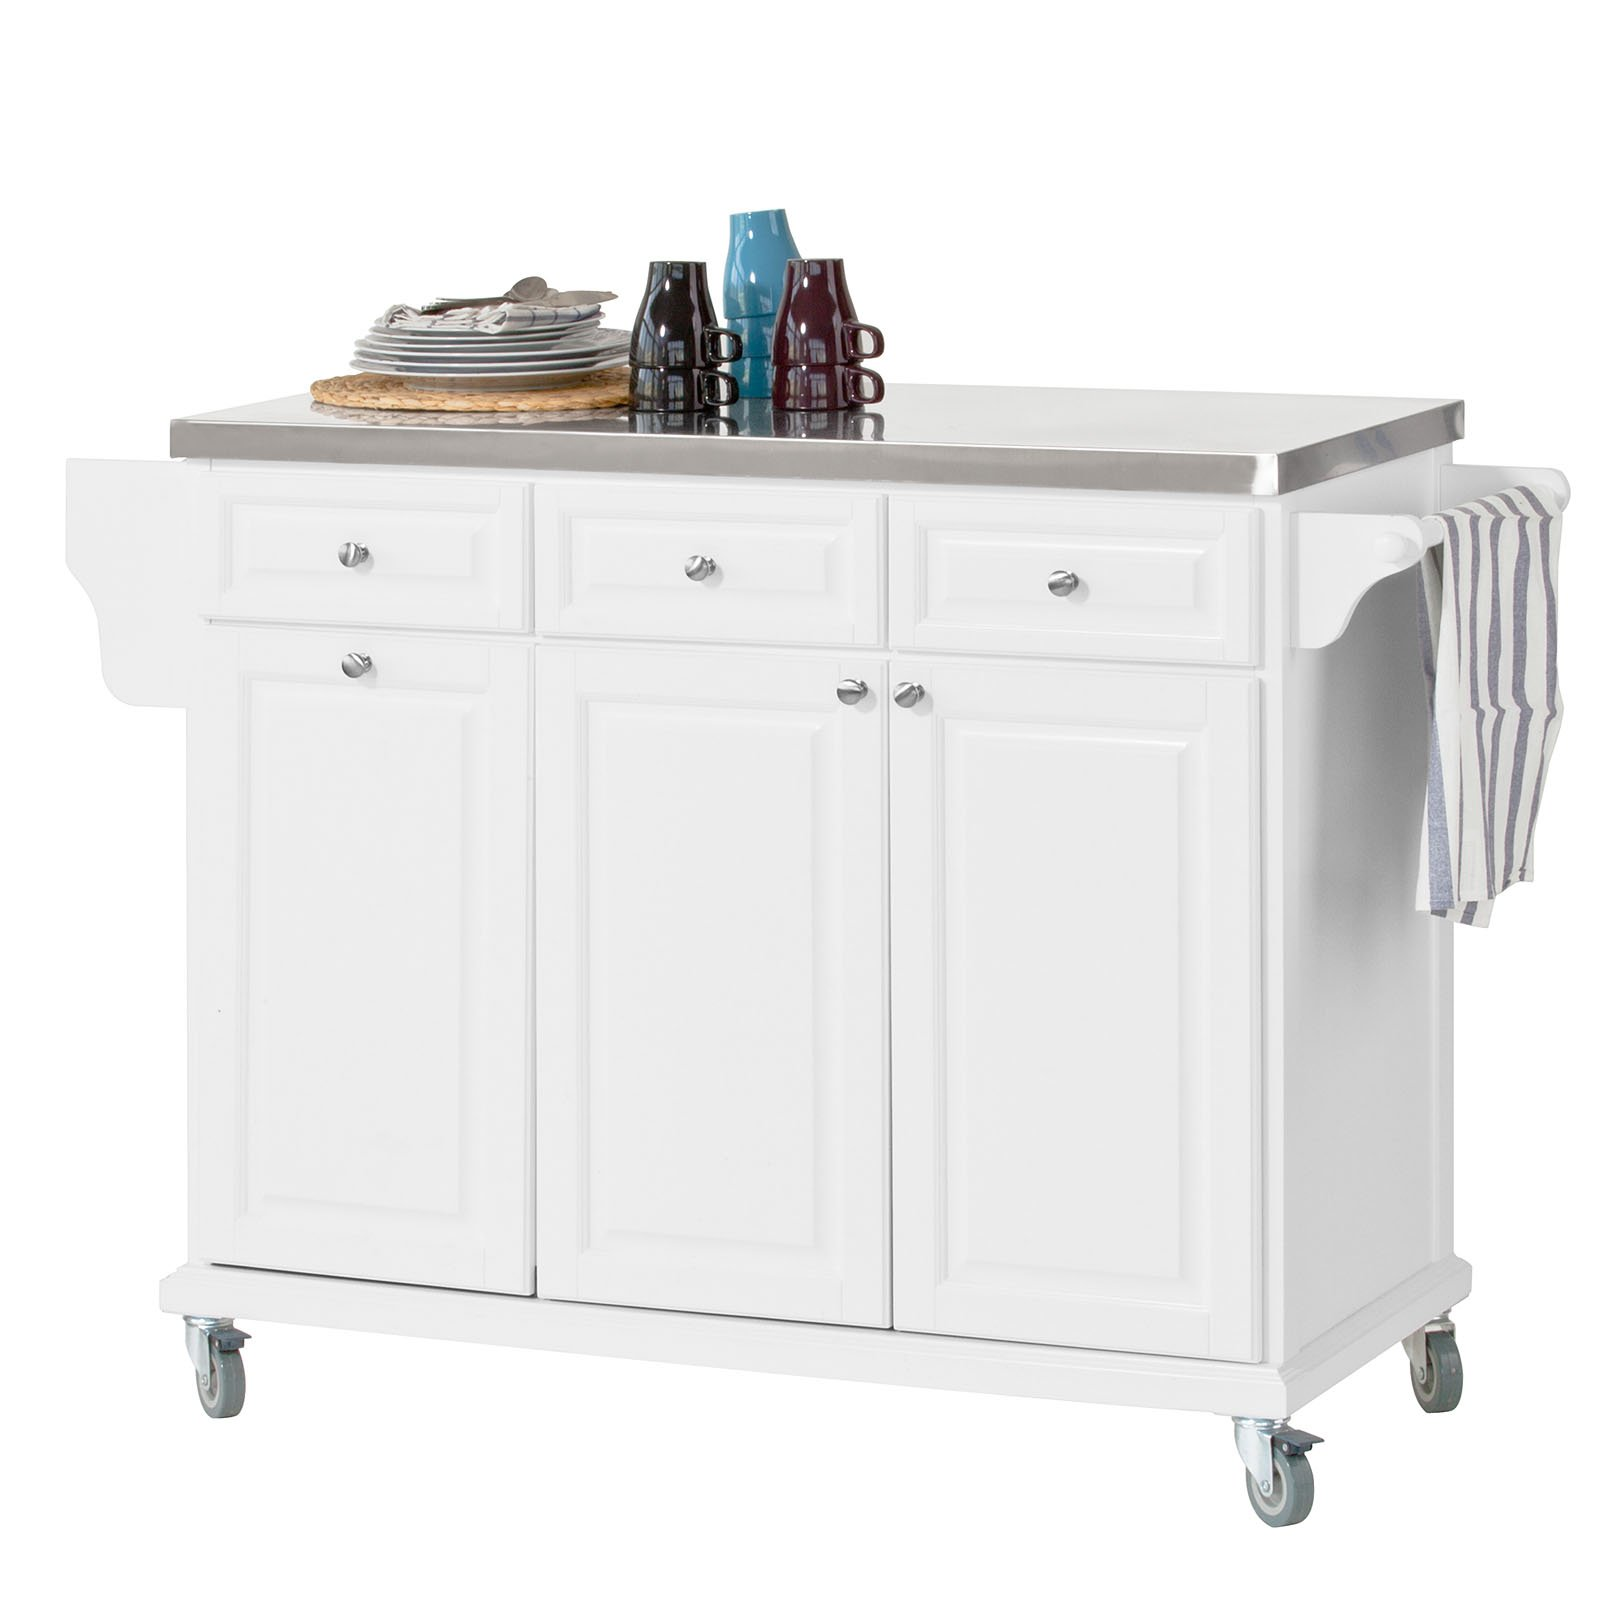 SoBuy?? White Luxury Kitchen Island Storage Trolley Cart, Kitchen Cabinet with Stainless Steel Worktop, FKW33-W by SoBuy by SoBuy (Image #1)